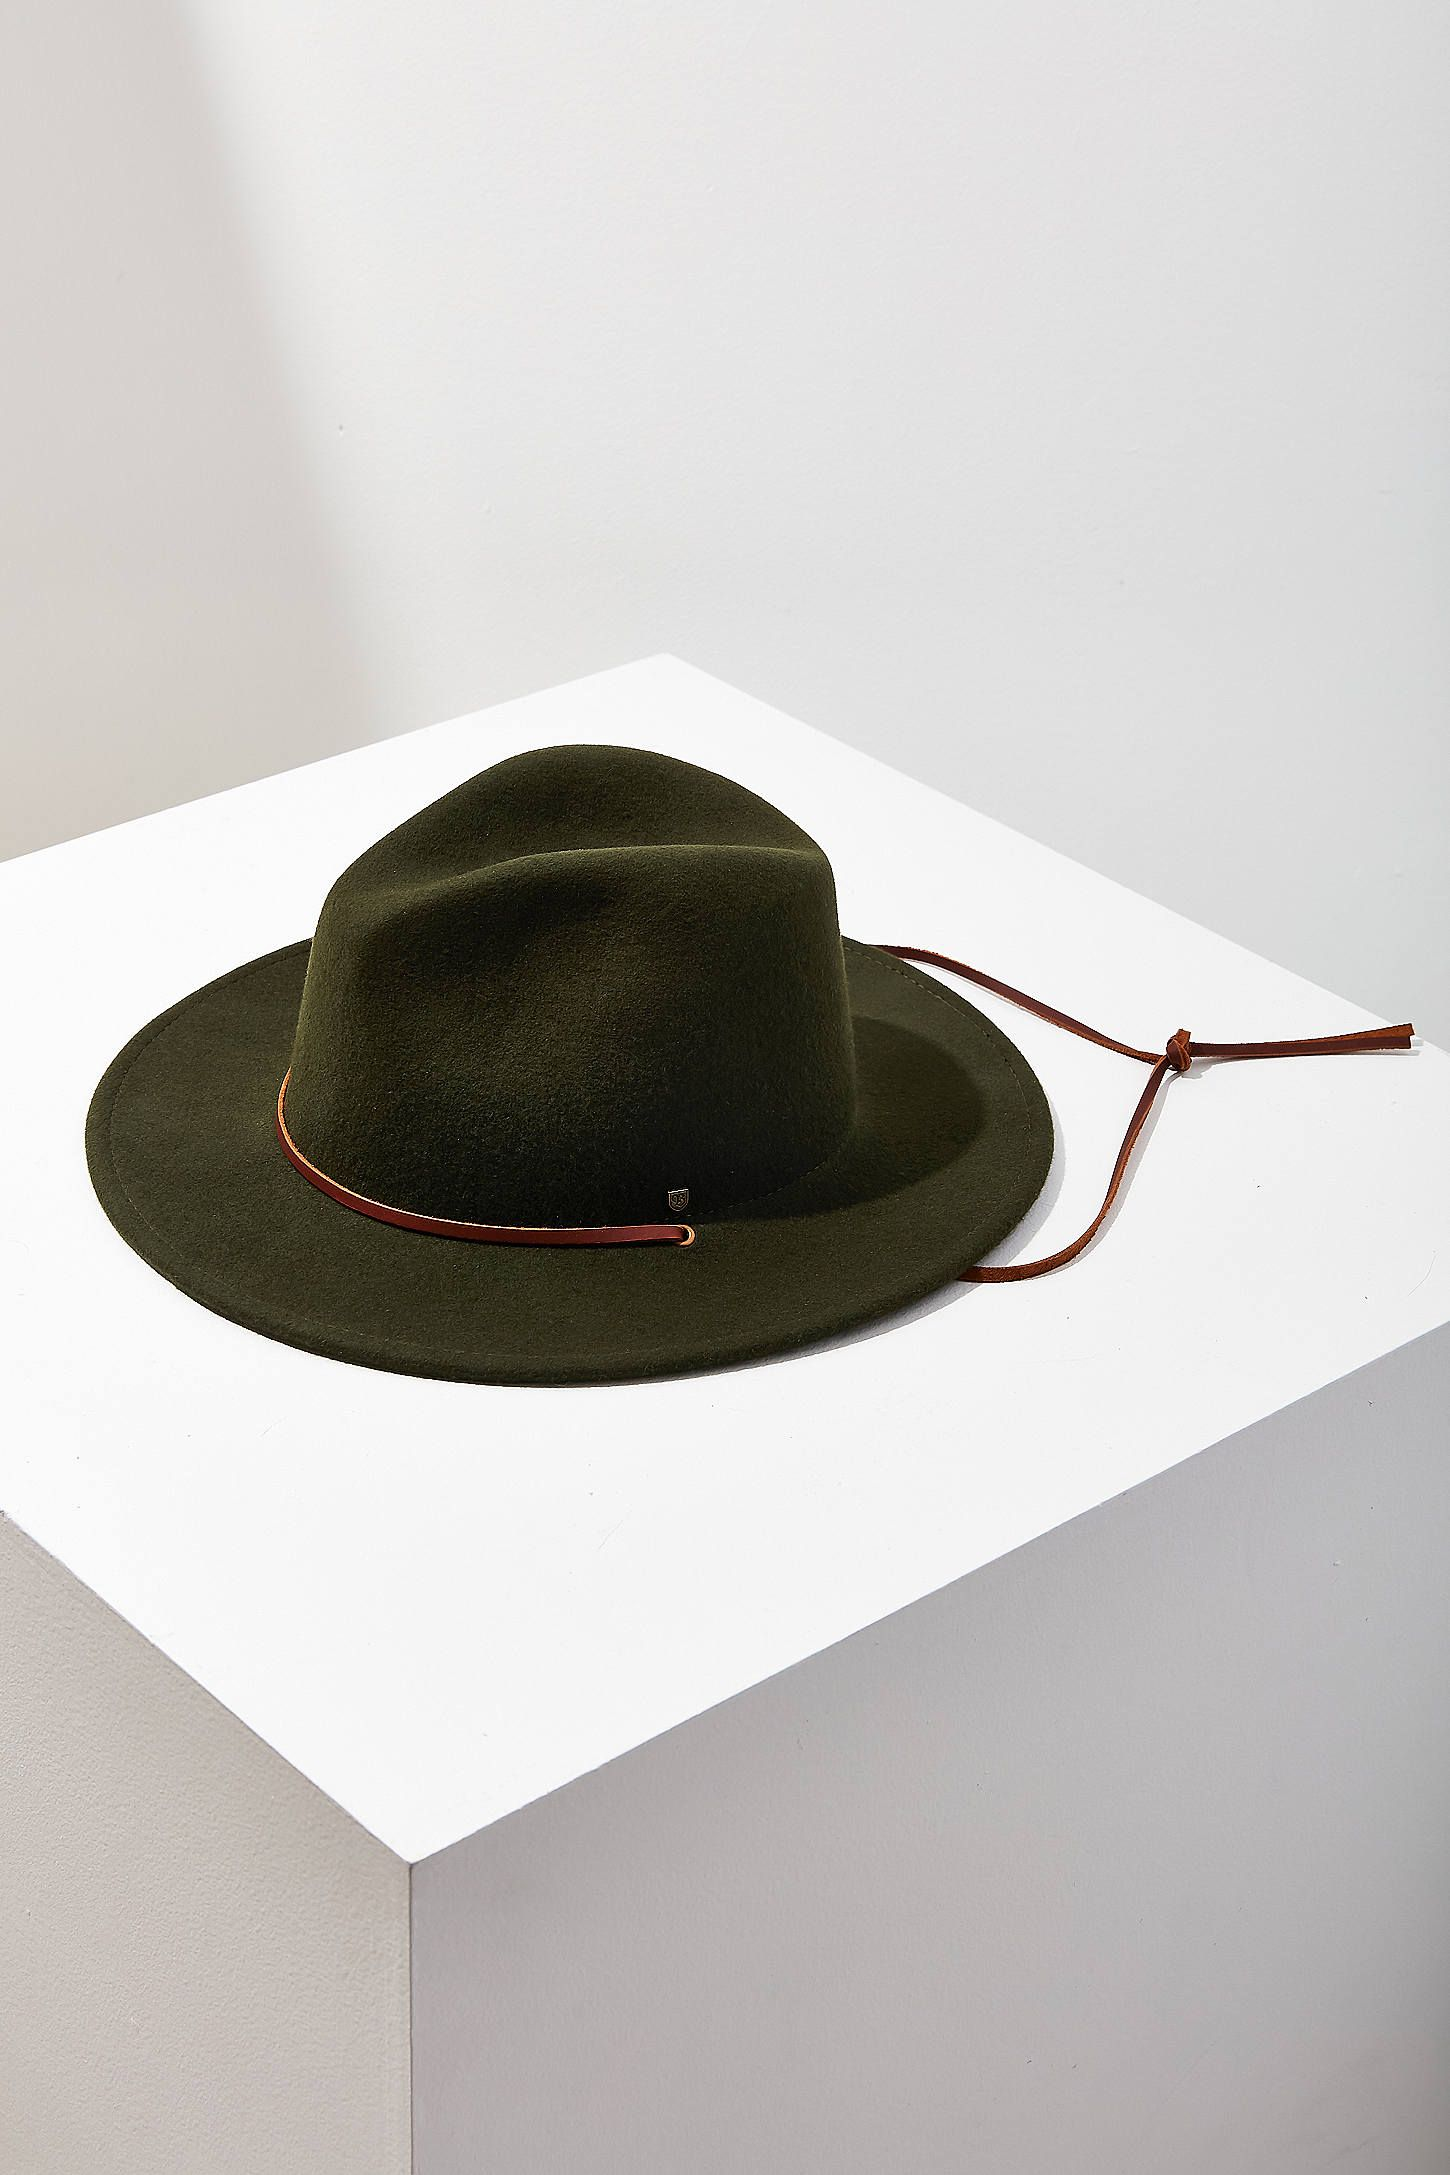 02f222c7 Shop Brixton Field Hat at Urban Outfitters today. We carry all the latest  styles, colors and brands for you to choose from right here.